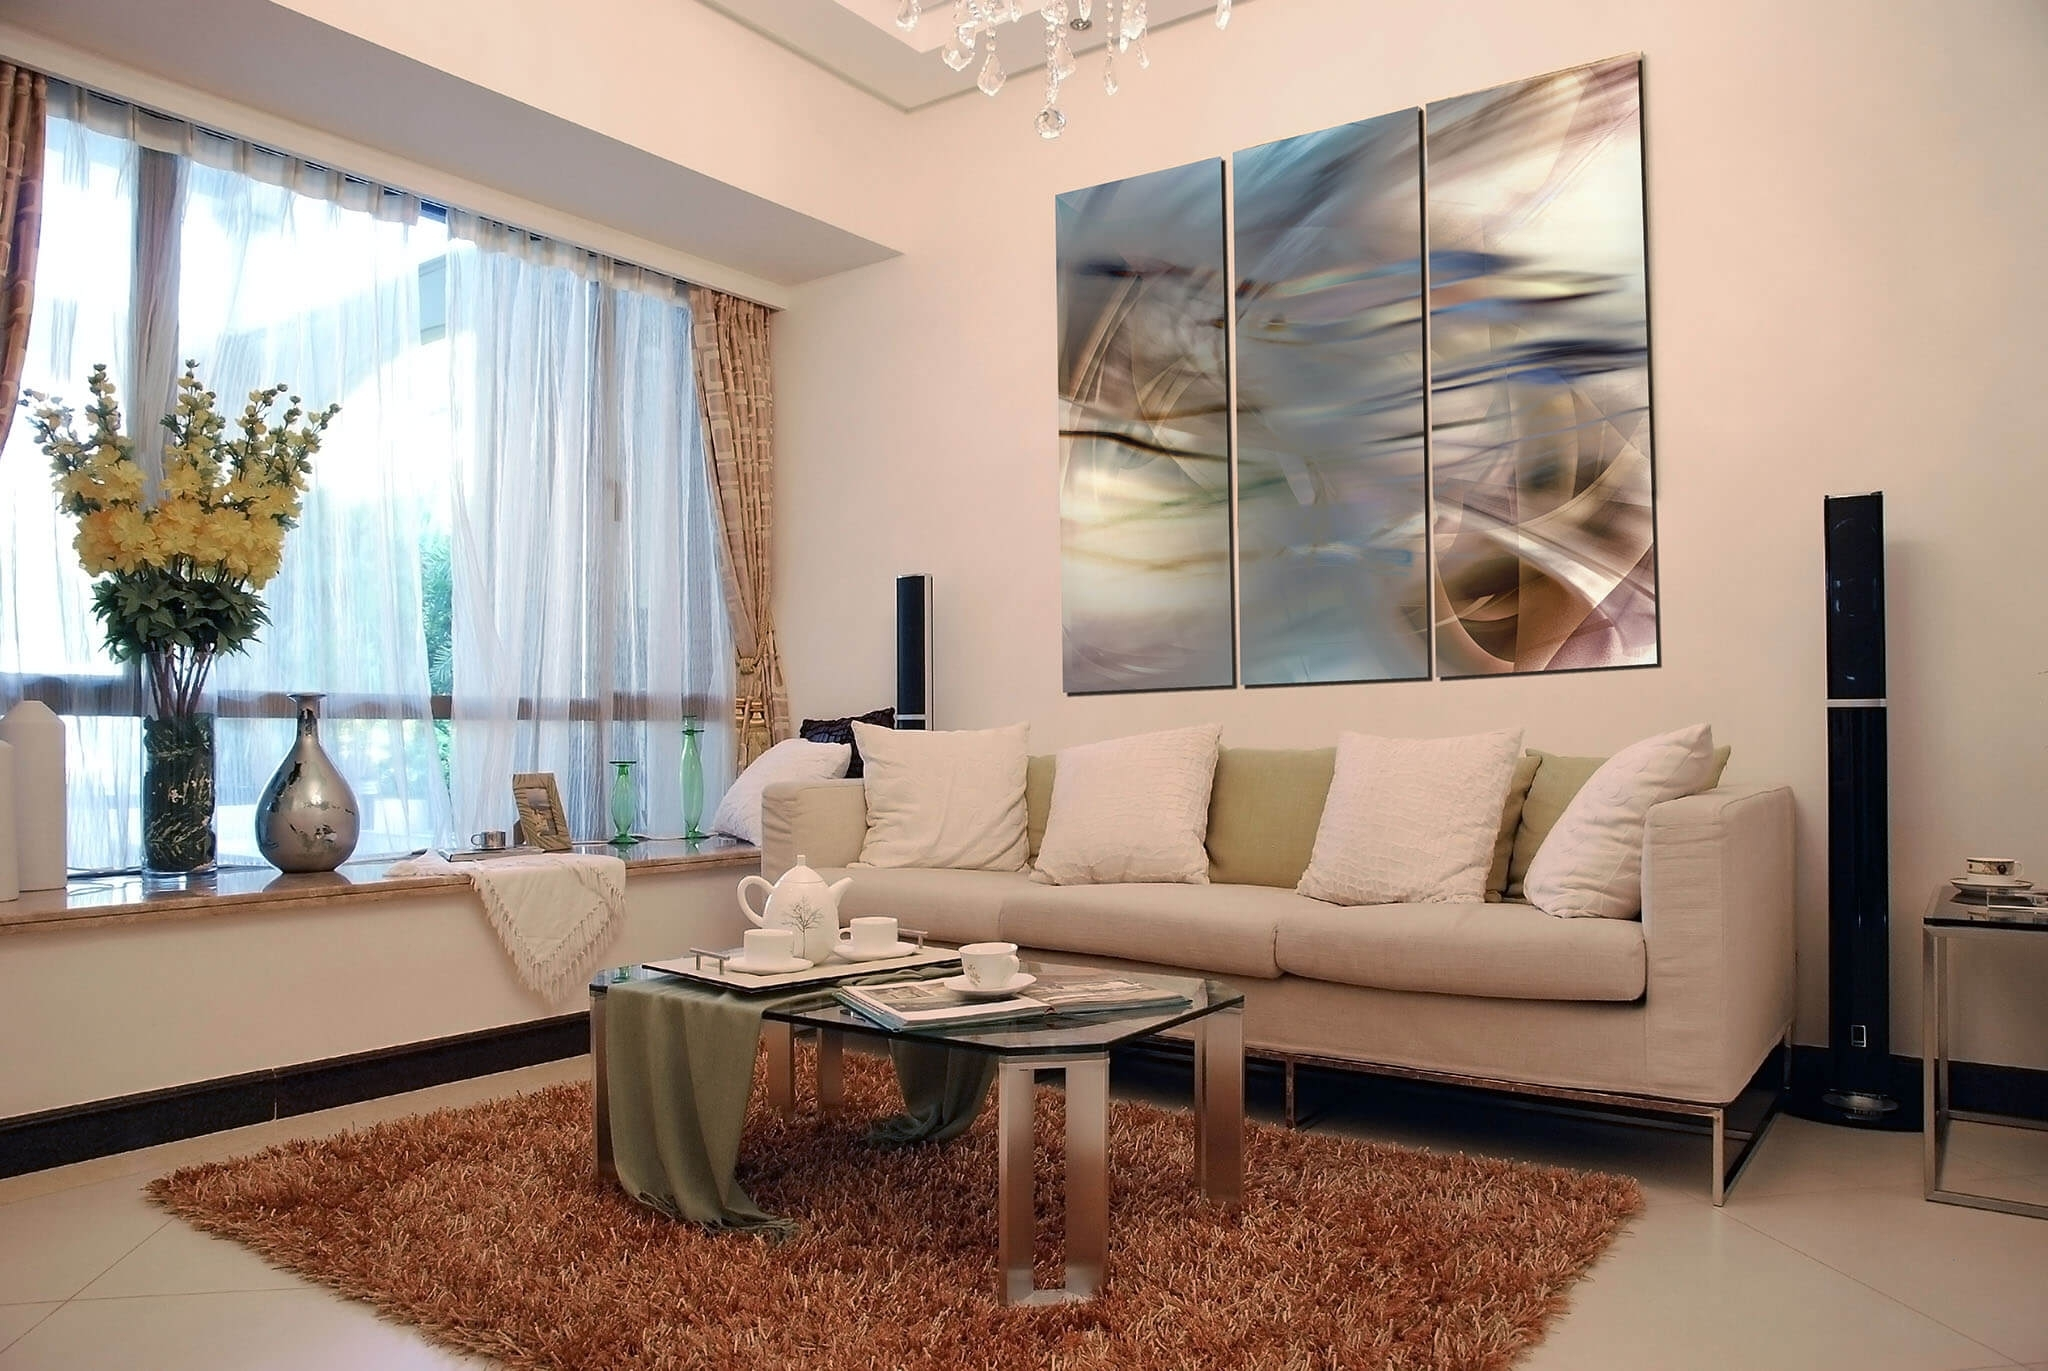 Explore Wall Art For Living Room Ideas For Your Home – Interior Throughout Wall Art For Living Room (View 7 of 20)